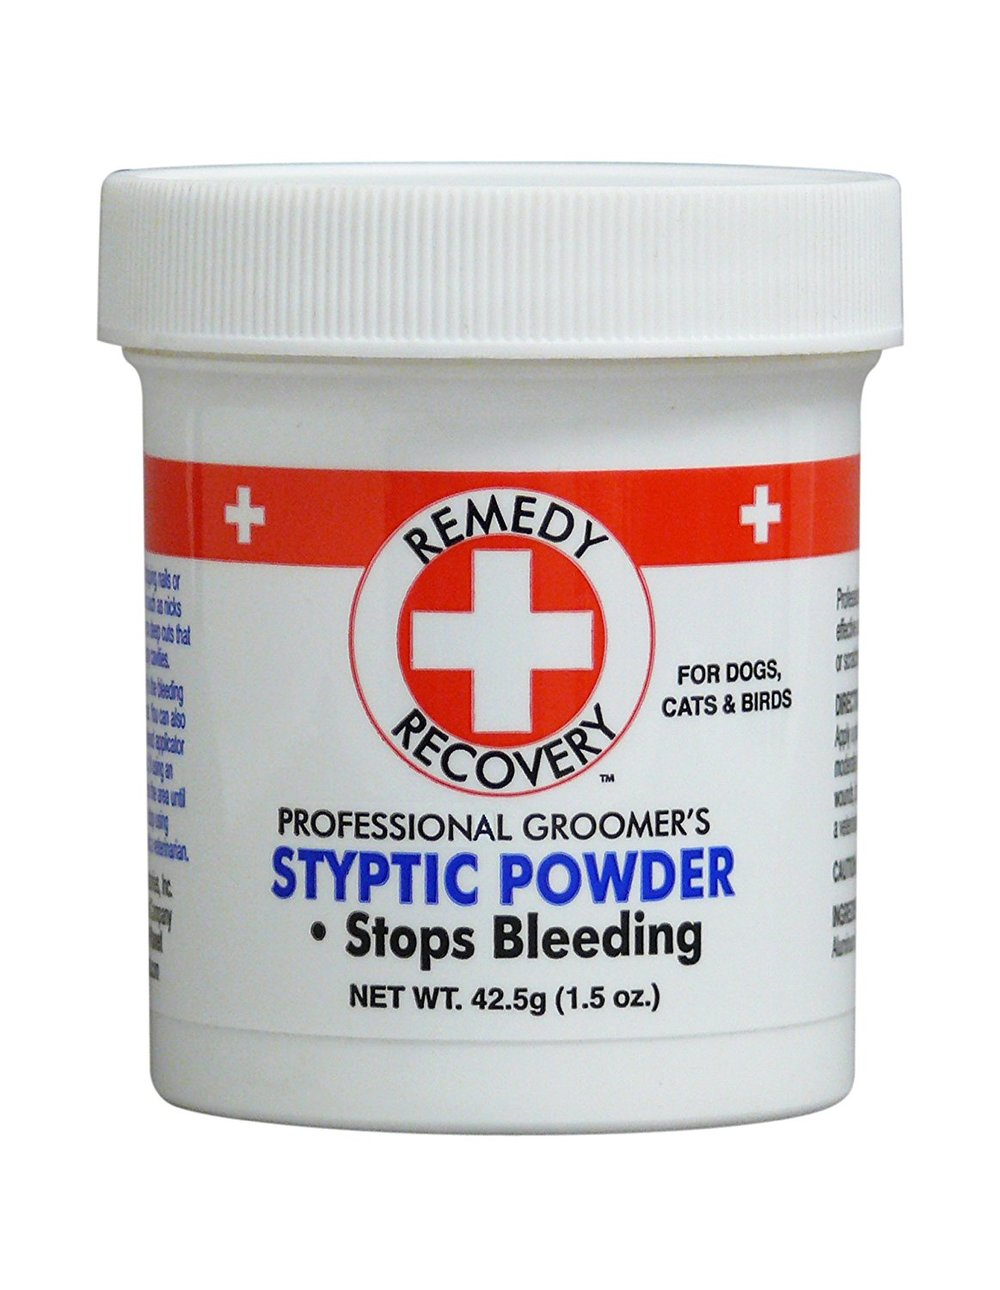 Cardinal Laboratories Remedy and Recovery Professional Groomer's Styptic Powder for Pets